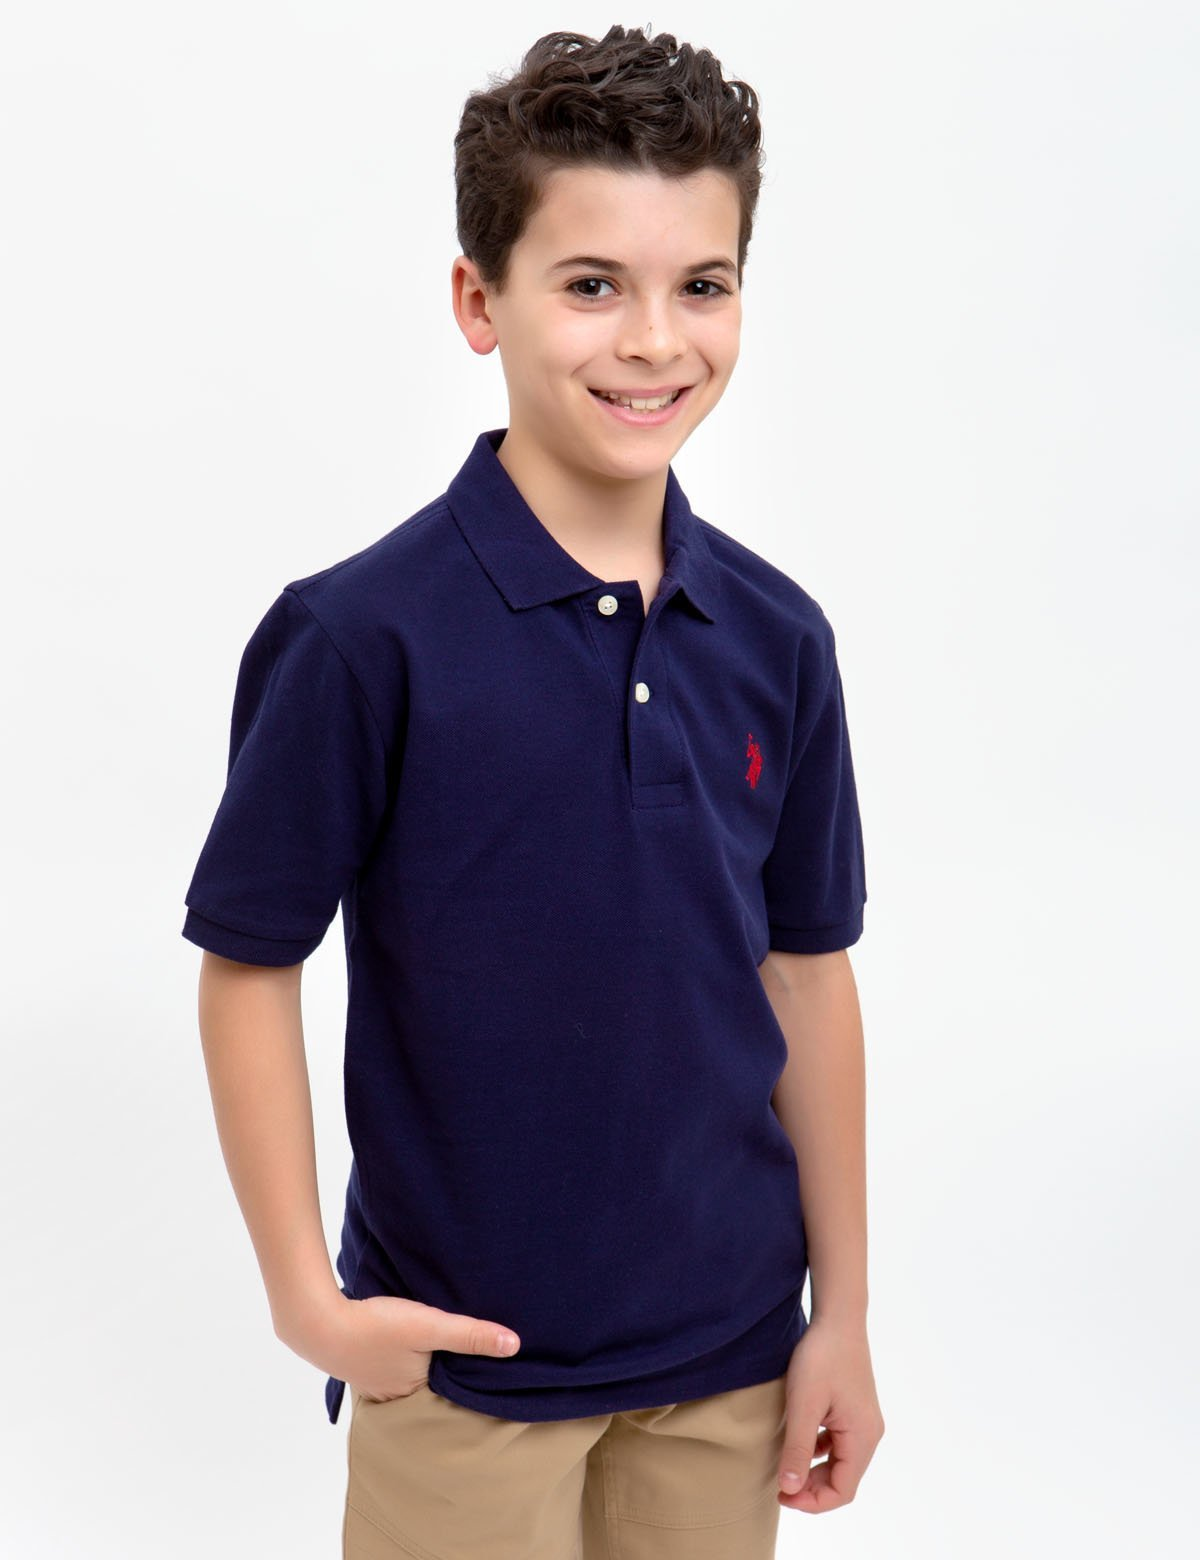 Uspa Clothing U Official sPolo Site AssnShirtsCasual hdrQCBtsx